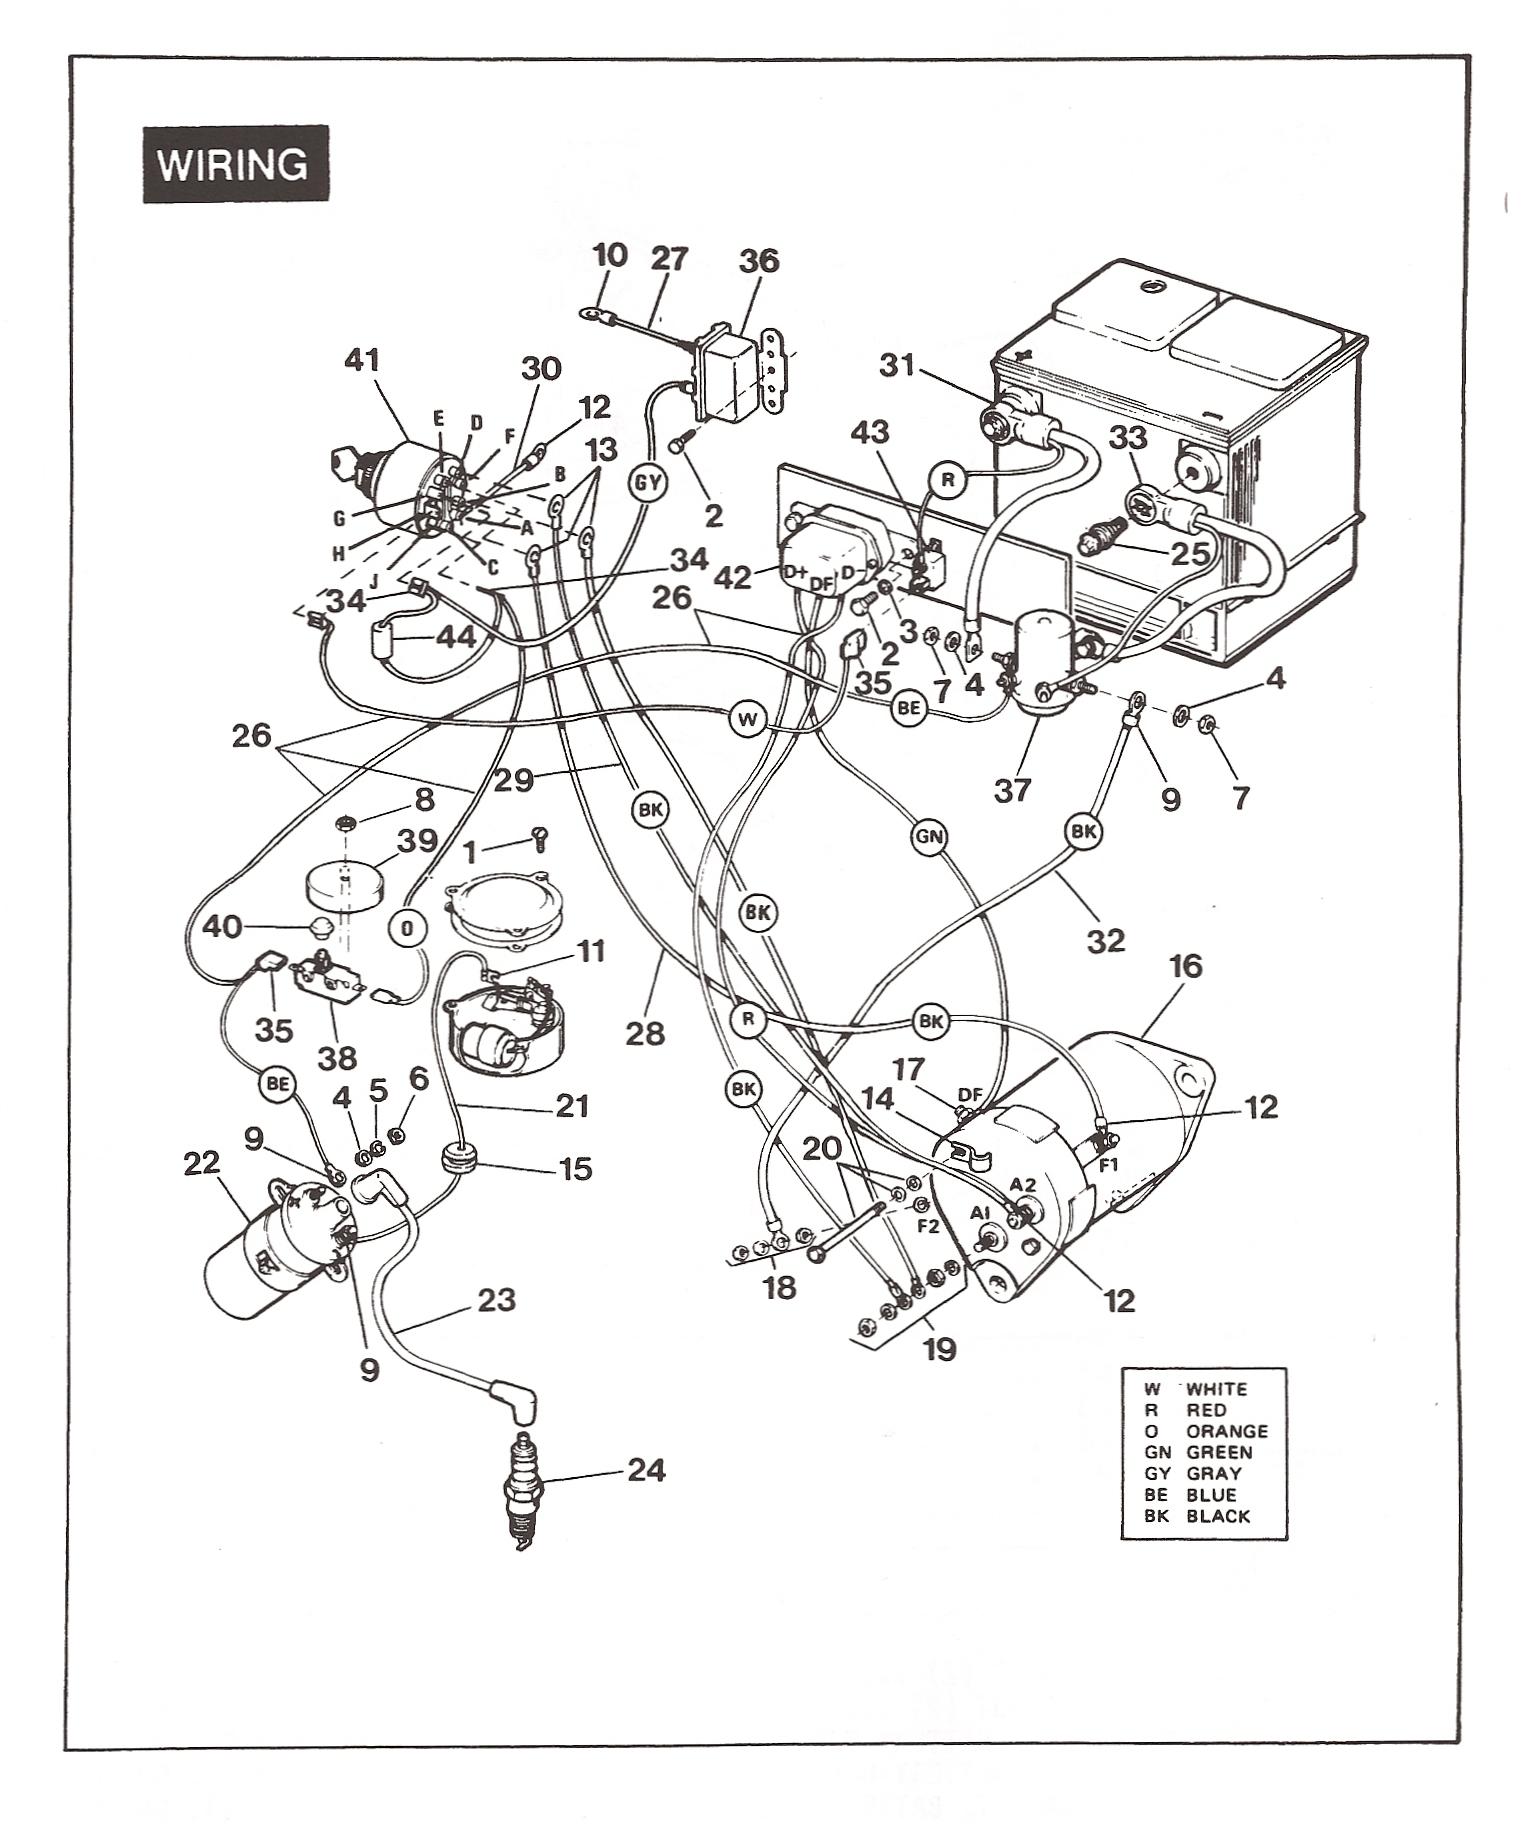 Par Car Parts Pictures To Pin